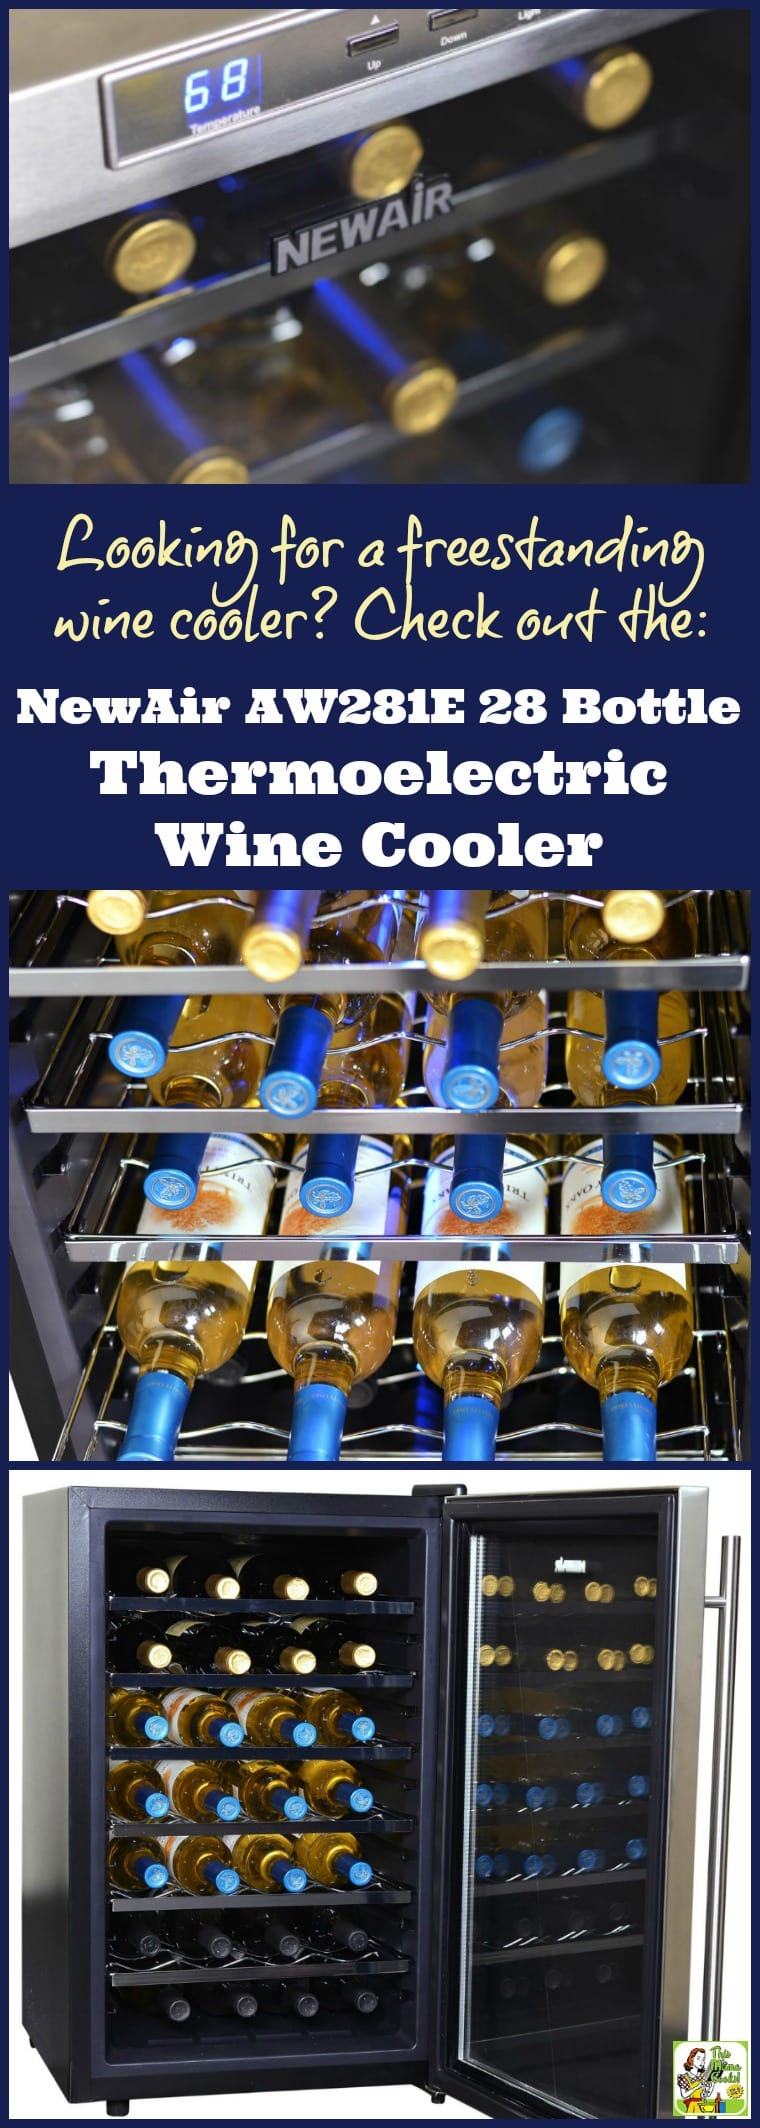 Looking for the best thermoelectric wine cooler? Try the NewAir AW-281E 28 Bottle Thermoelectric Wine Cooler. It's a great freestanding wine cooler. Also works as a countertop wine cooler.